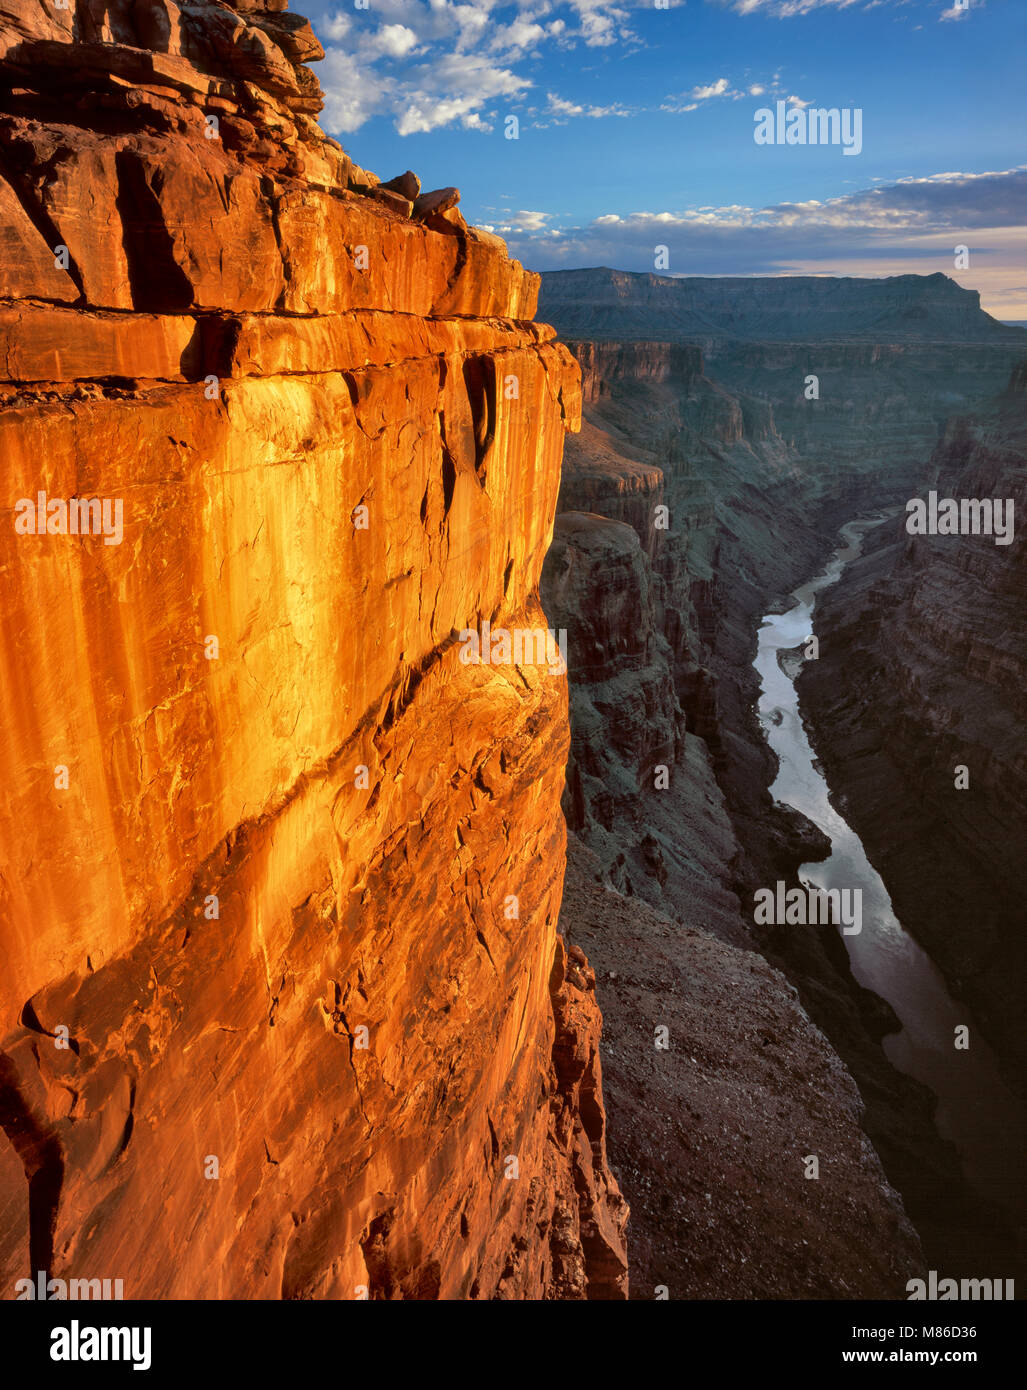 Toroweap Overlook, Colorado River, Grand Canyon National Park, Arizona - Stock Image